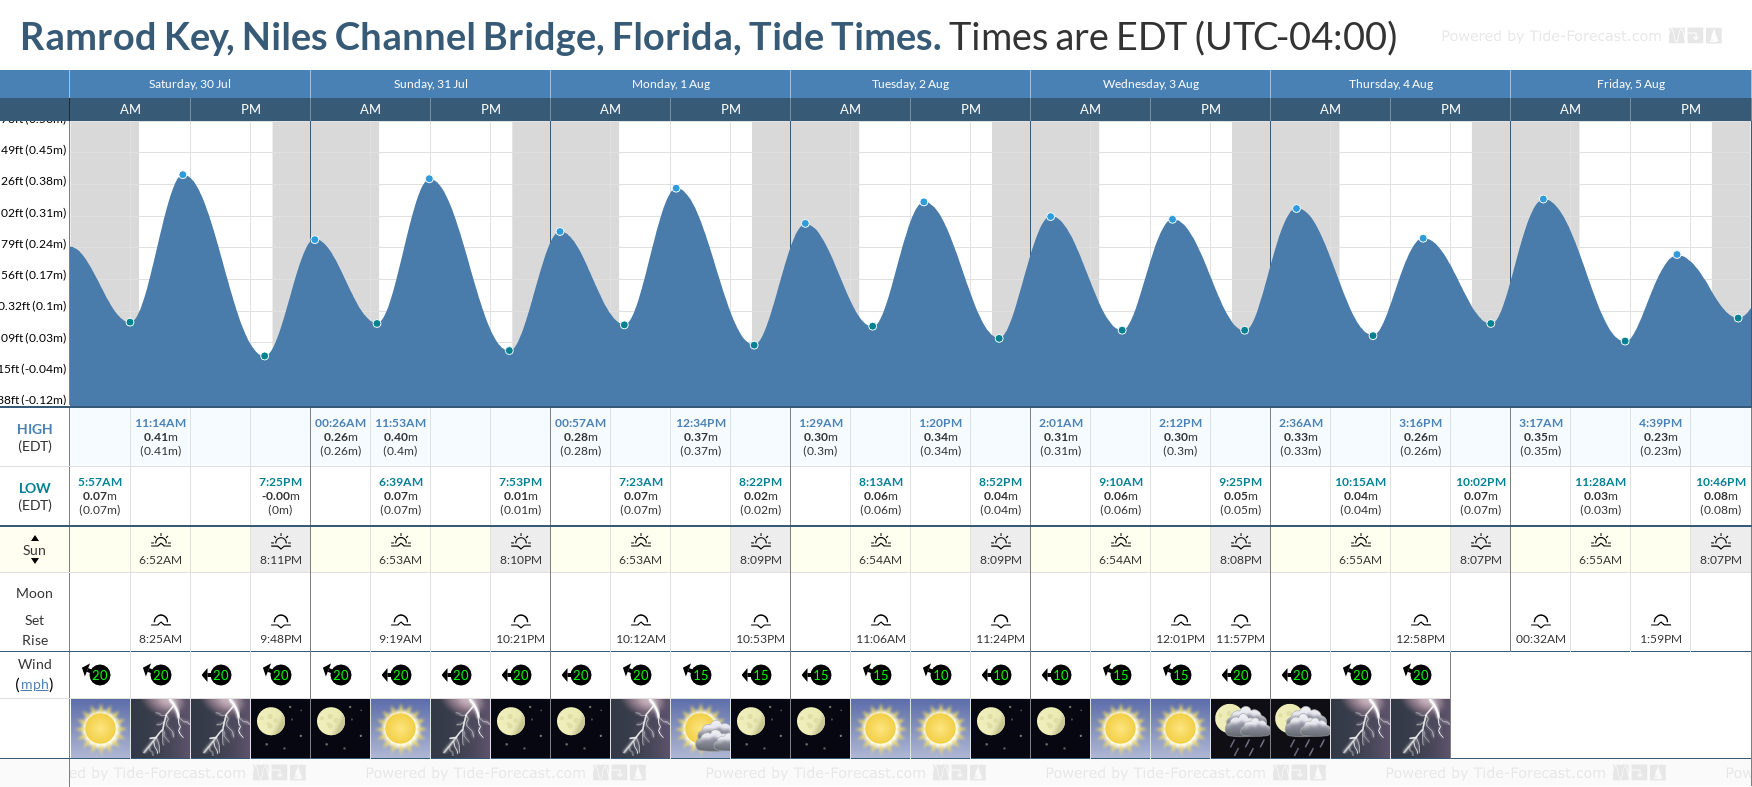 Ramrod Key, Niles Channel Bridge, Florida Tide Chart including high and low tide tide times for the next 7 days